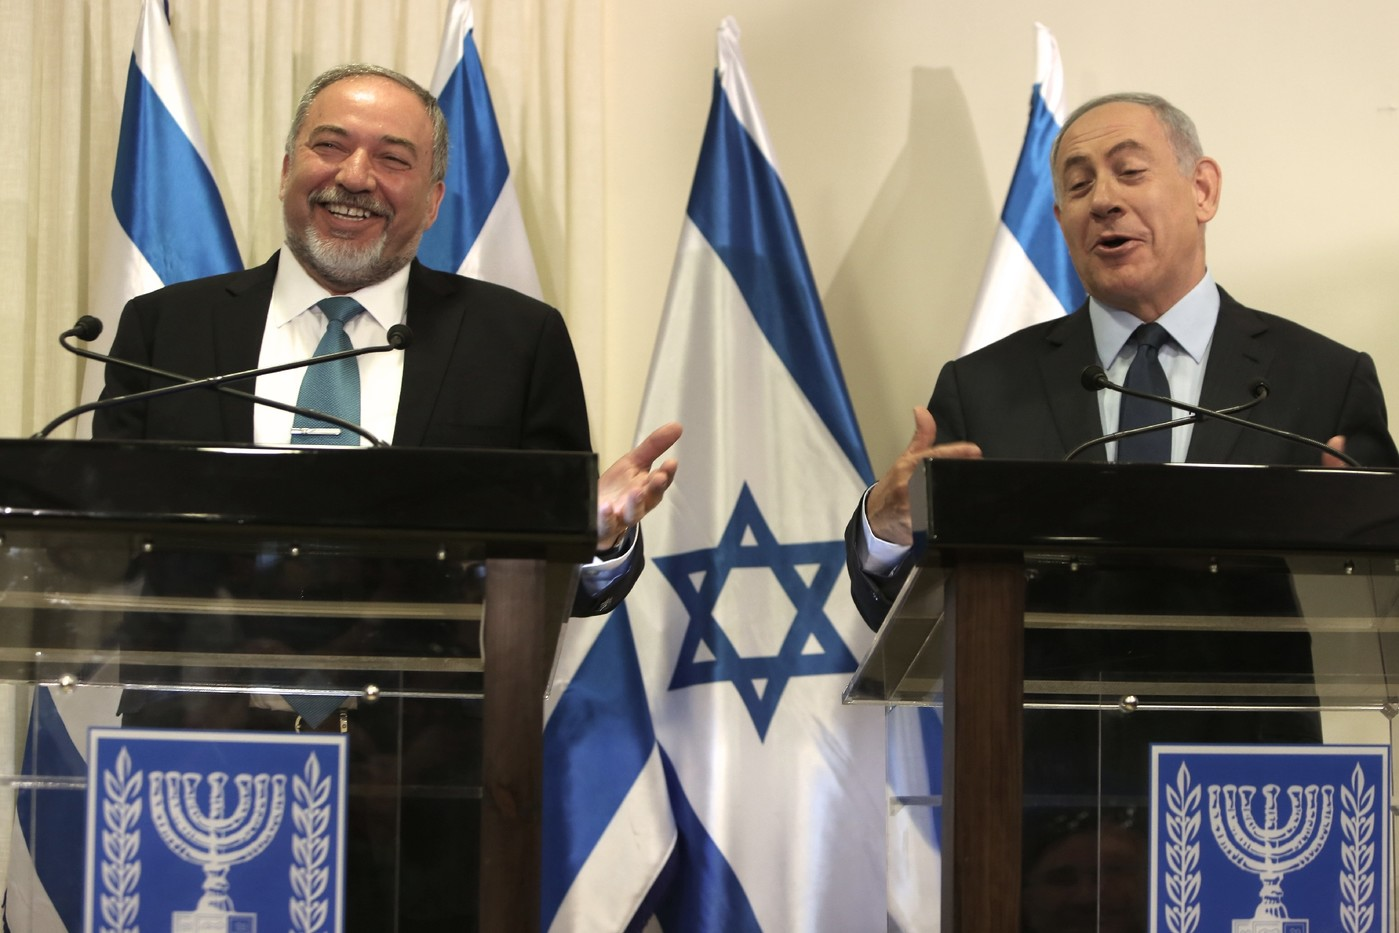 Photo of Israeli government sinks to new low of rightwing extremism